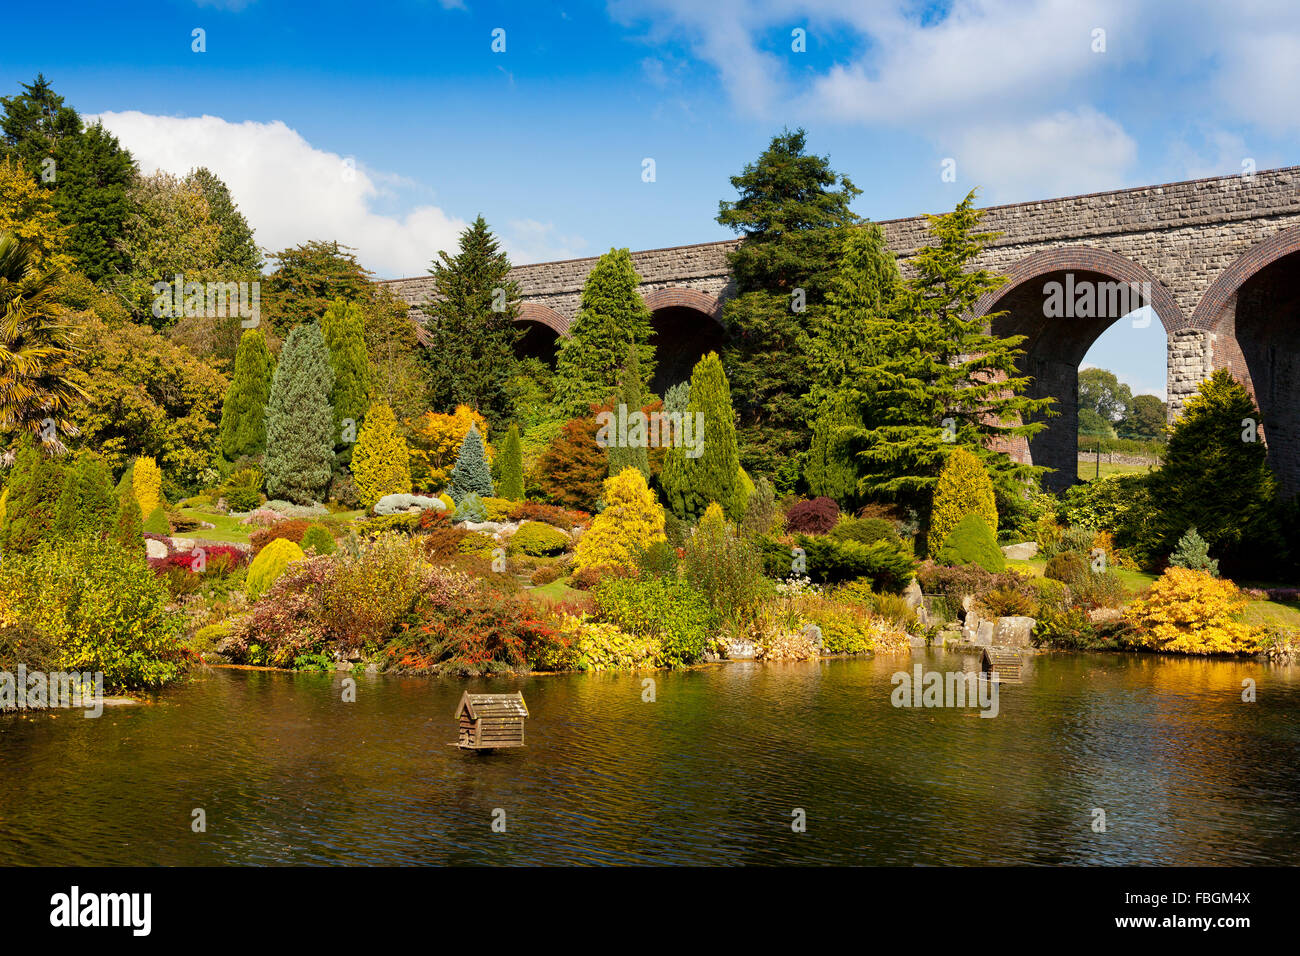 The ornamental lake and assorted conifer trees in Kilver Court Gardens, Shepton Mallet, Somerset, England, UK - Stock Image